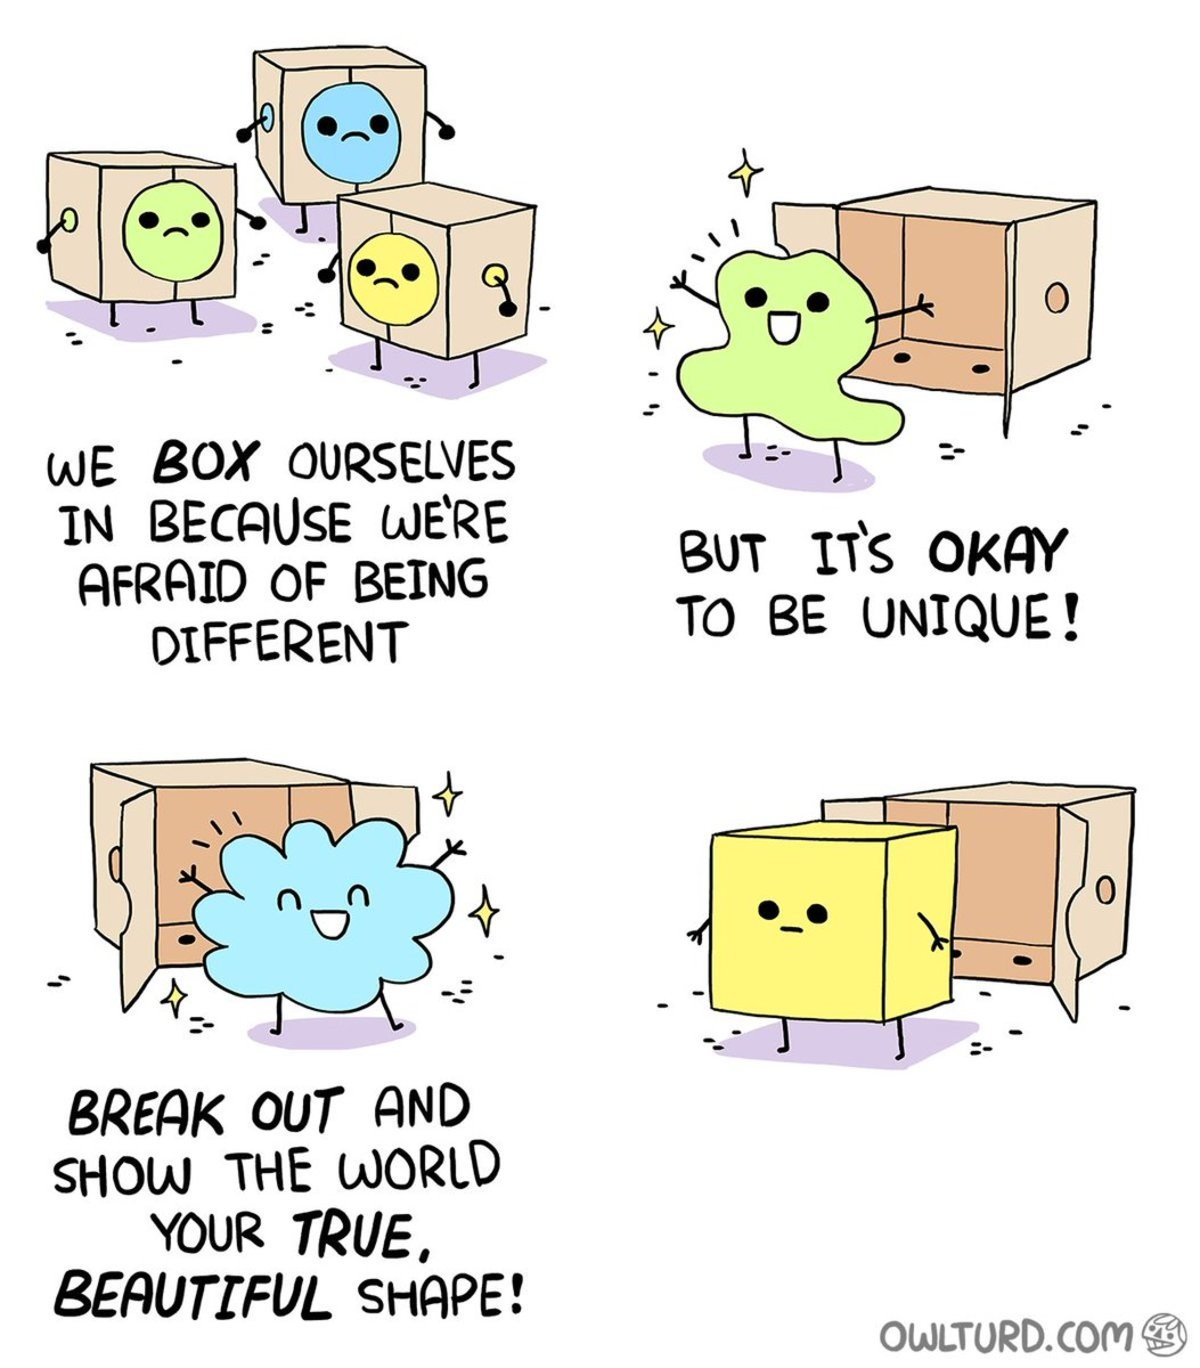 I've become one with the mediocre. .. We know what really happens when we come out of our boxes